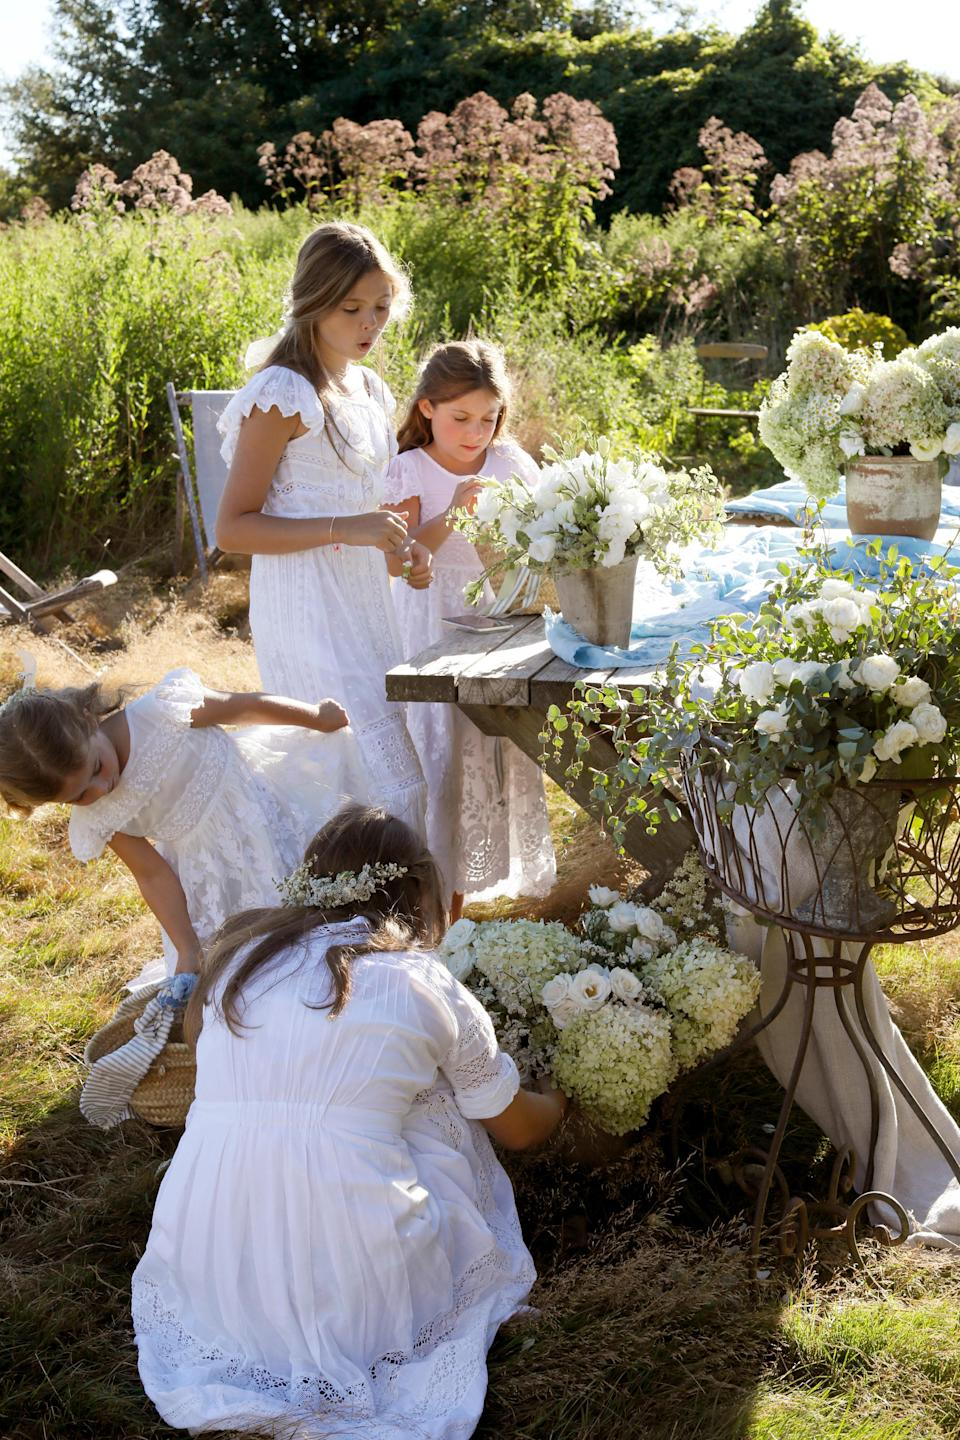 """""""They take the task of flower girl very seriously, attention to detail runs in the family!"""" Dean says. """"Family friend Piper Clurman, daughter of Wendy Hirschberg Clurman, who was a former fashion market director at <em>Vogue</em>, helps gather petals."""""""